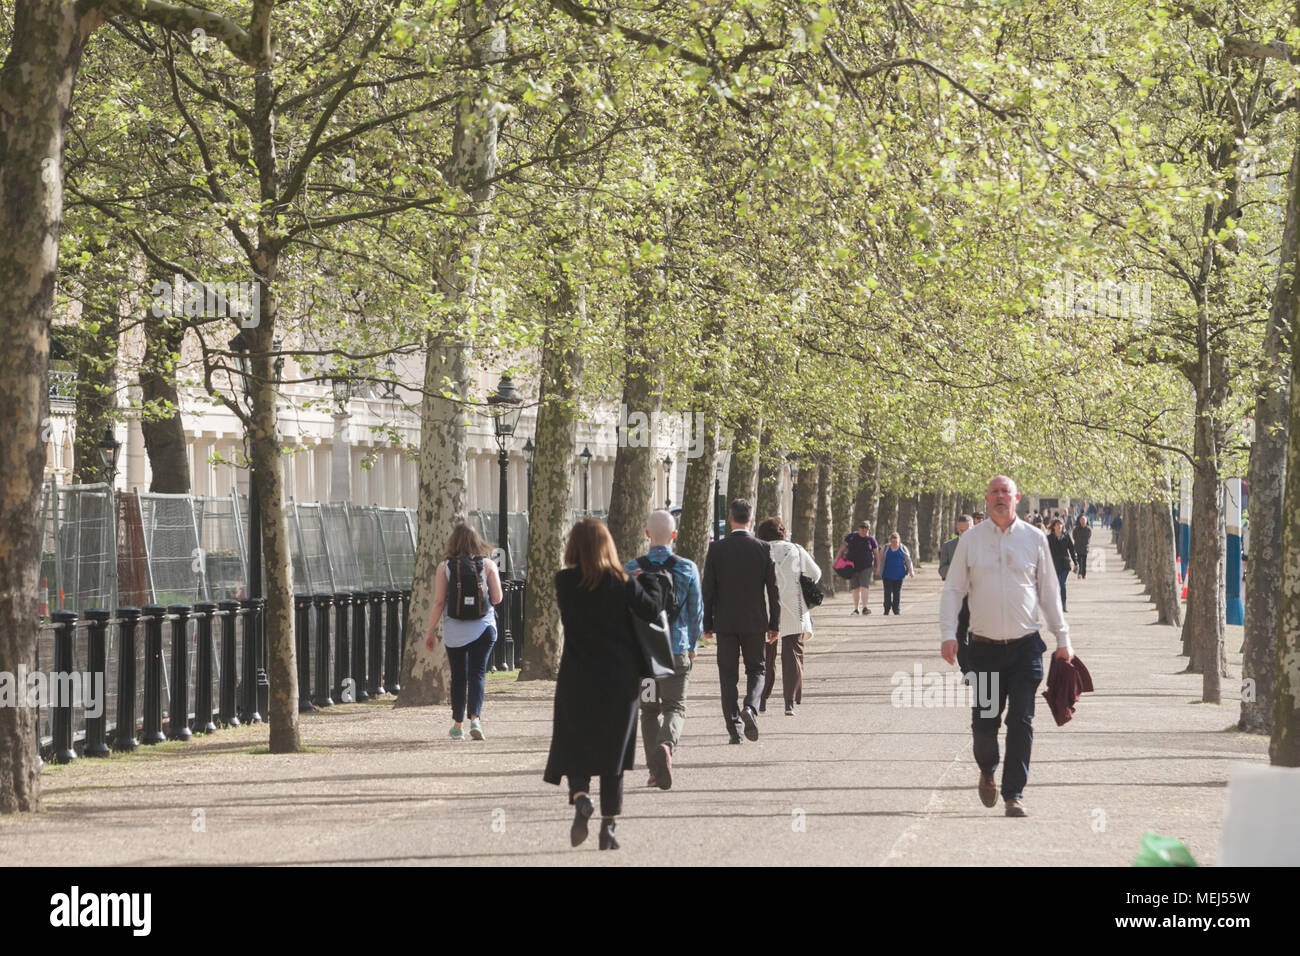 London UK. 23rd April 2018. UK Weather: Morning commuters walking in the spring sunshine down The Mall on a pleasant sunny morning as London wakes to cooler temperatures Credit: amer ghazzal/Alamy Live News Stock Photo